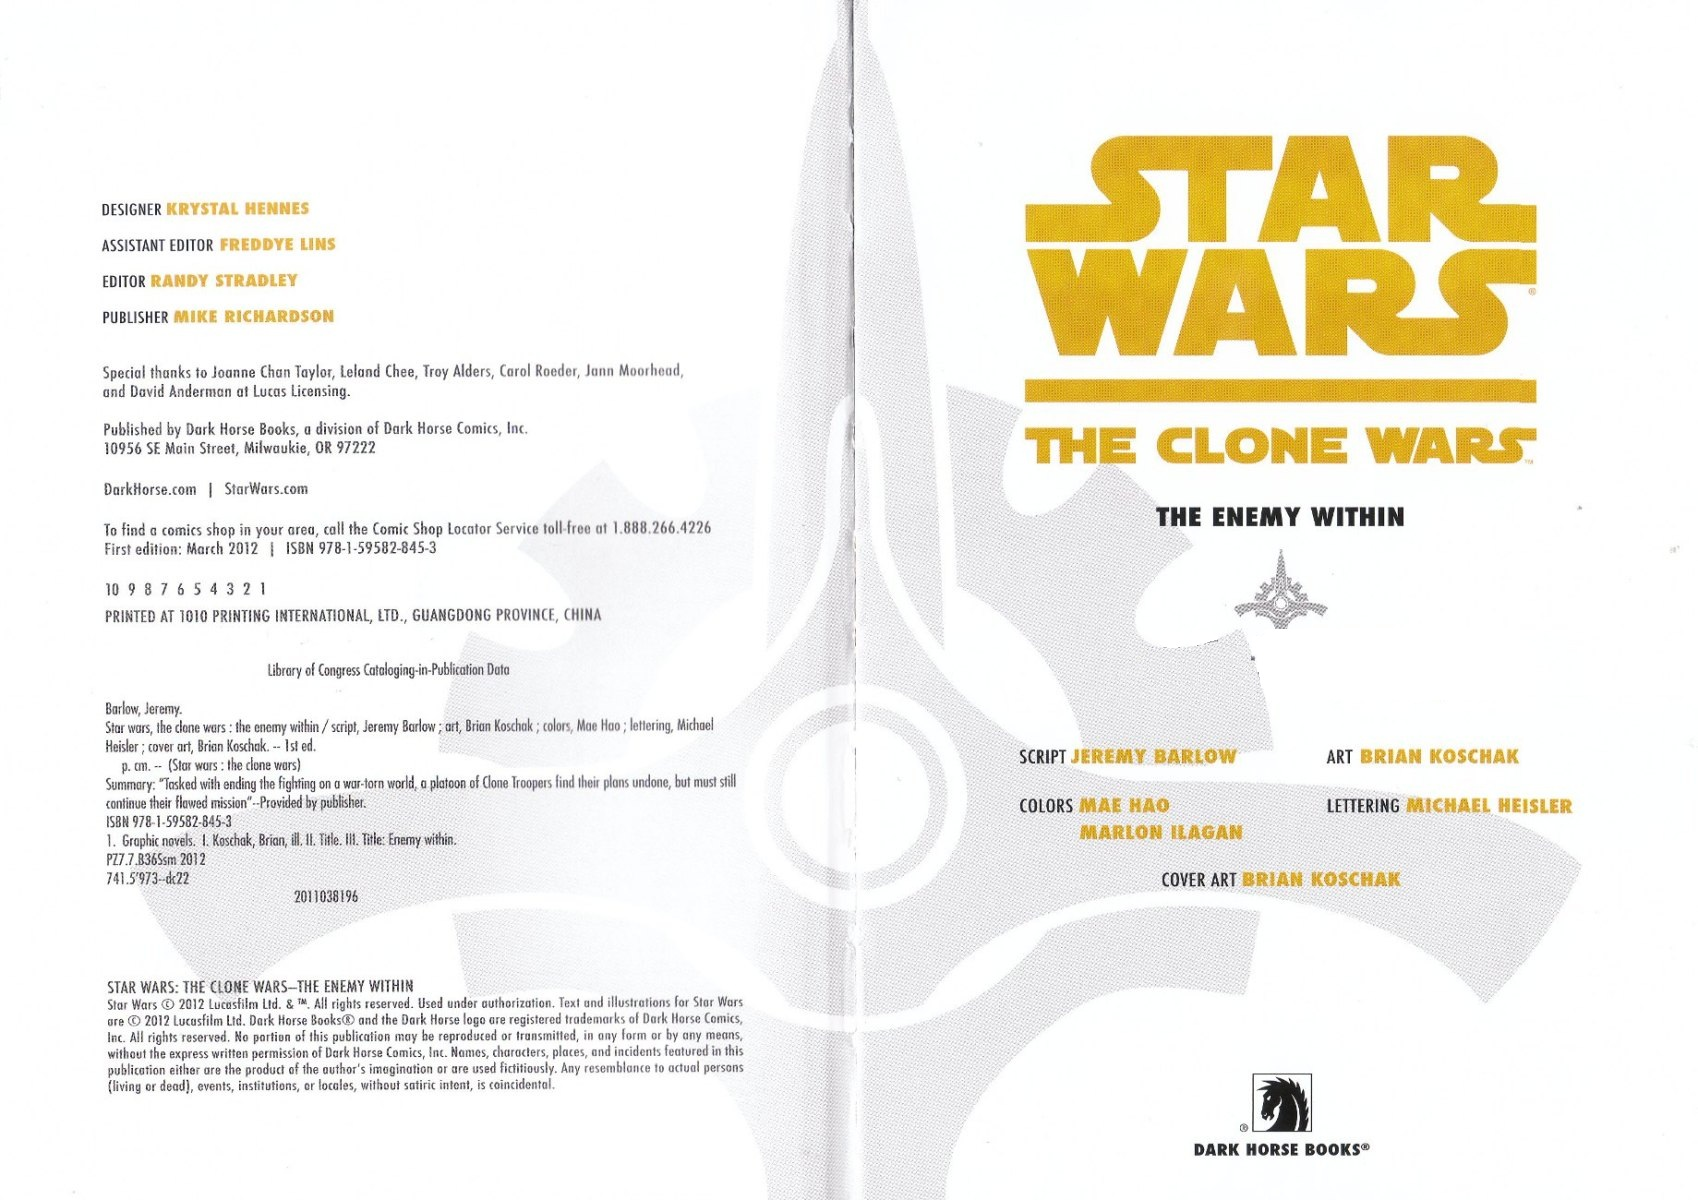 Read online Star Wars: The Clone Wars - The Enemy Within comic -  Issue # Full - 3